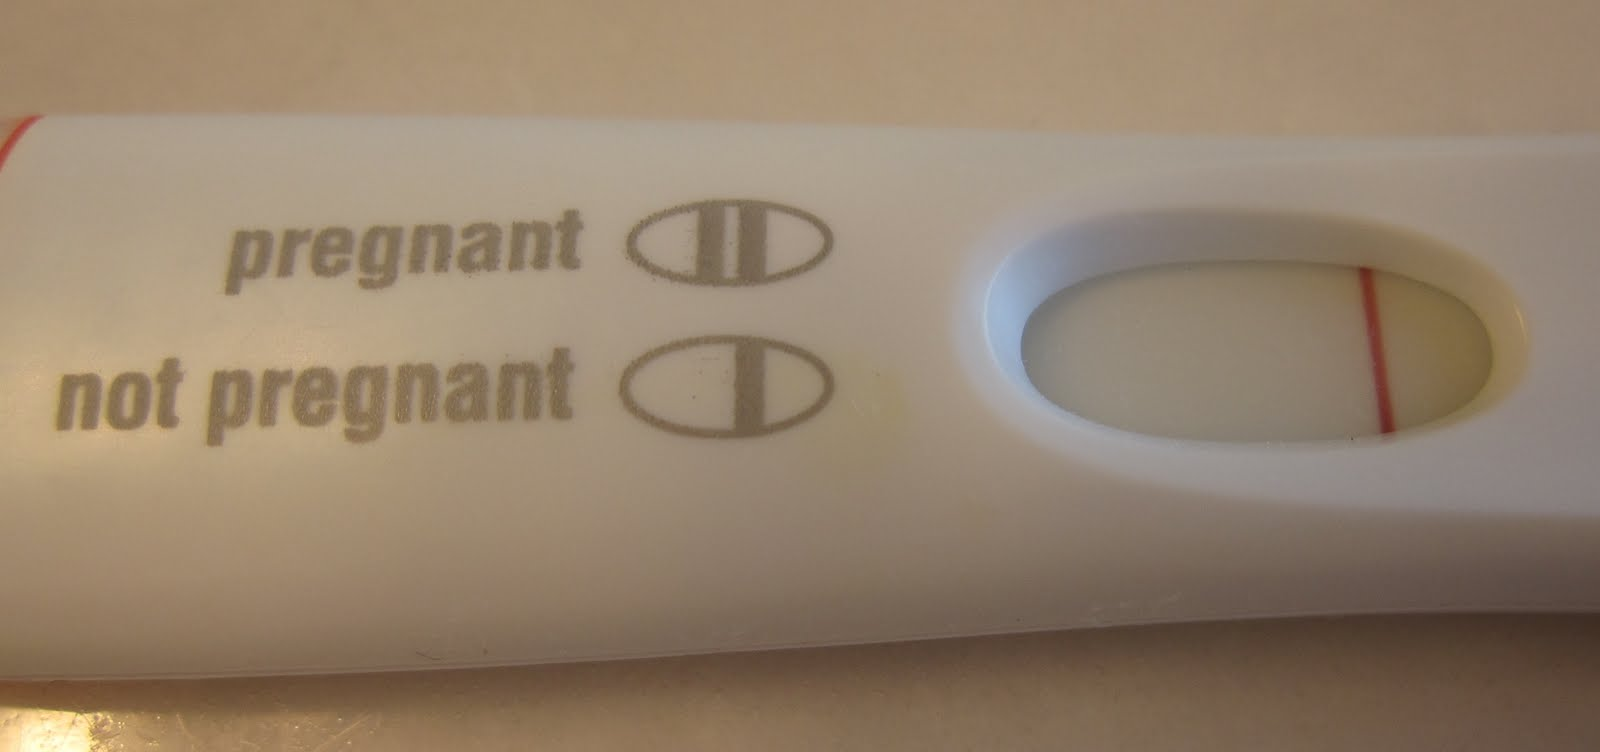 Blood pregnancy test negative can i still be pregnant